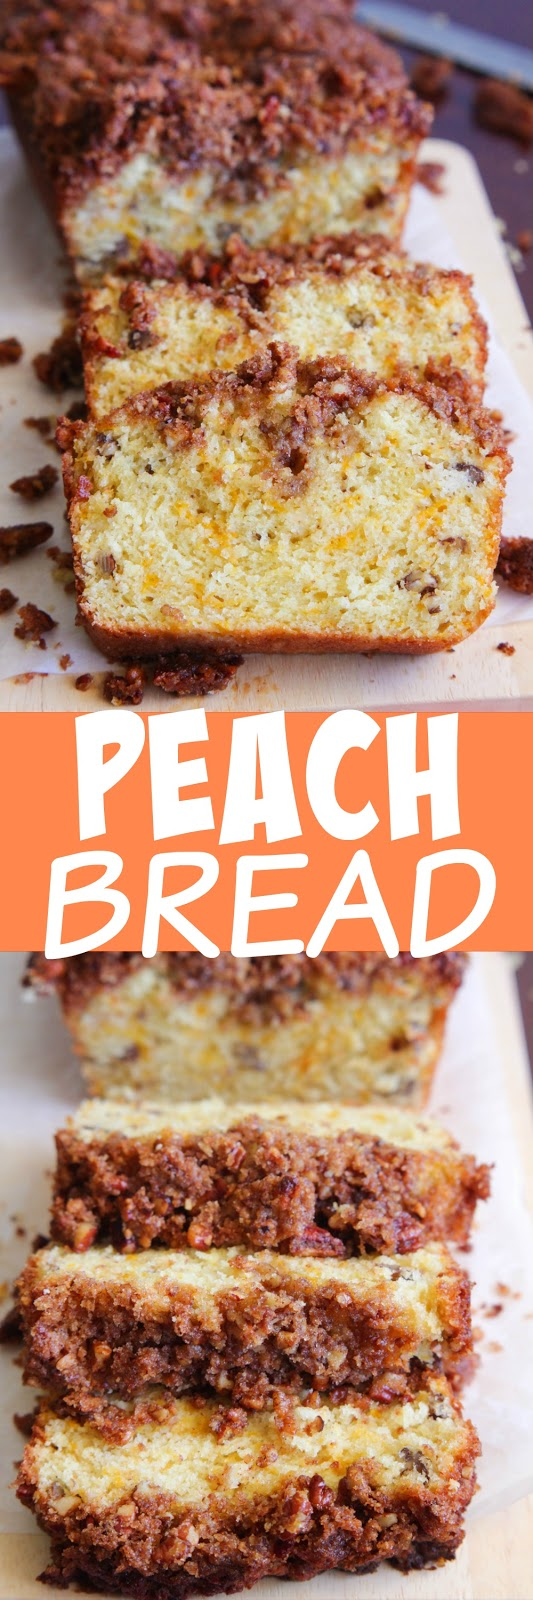 Eat Cake For Dinner: Peach Bread and Country Cooking From ...